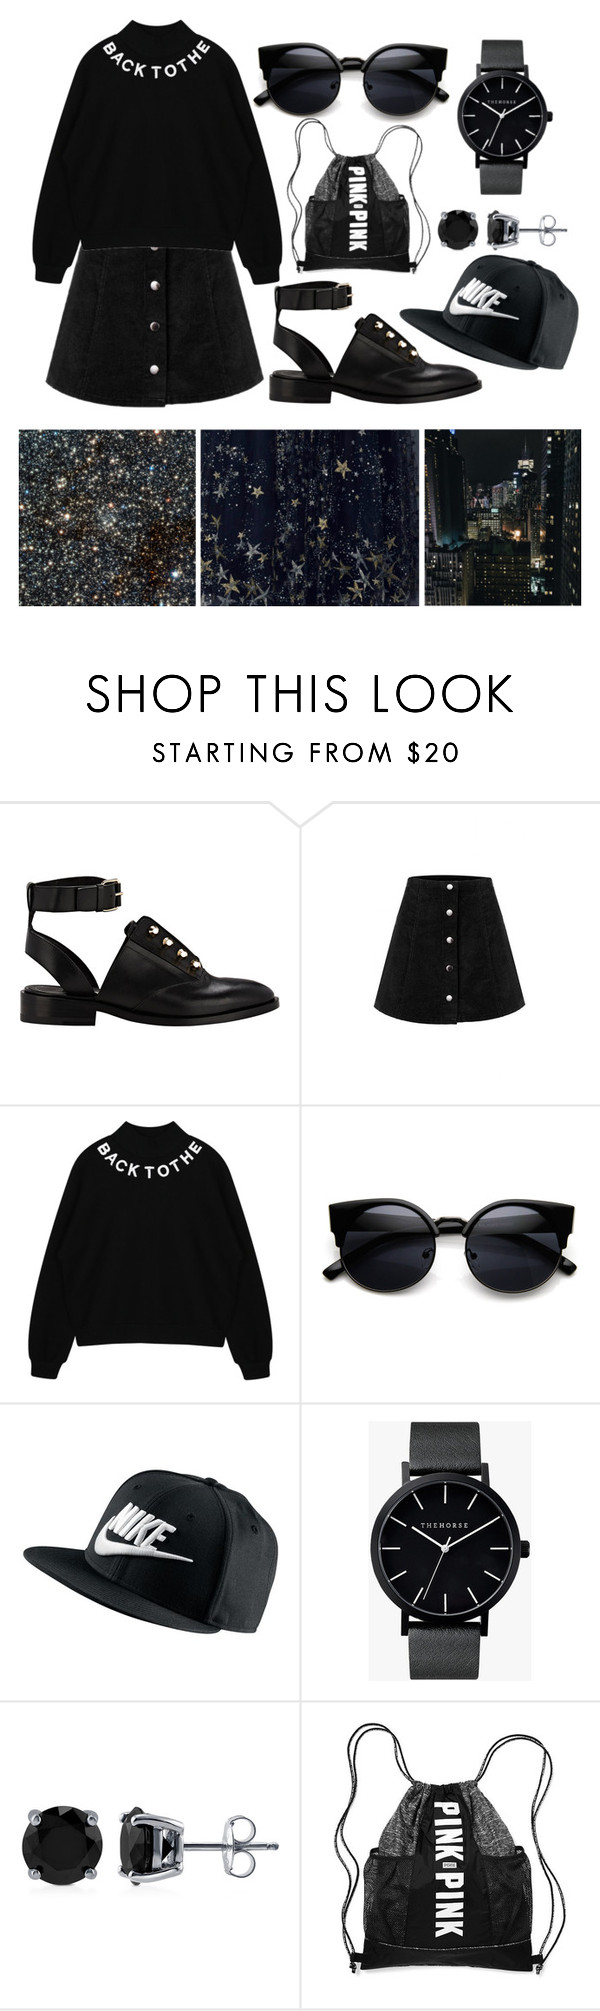 """""""Star - BLACK"""" by sialiaaa ❤ liked on Polyvore featuring Balenciaga, NIKE, The Horse, BERRICLE, women's clothing, women, female, woman, misses and juniors"""